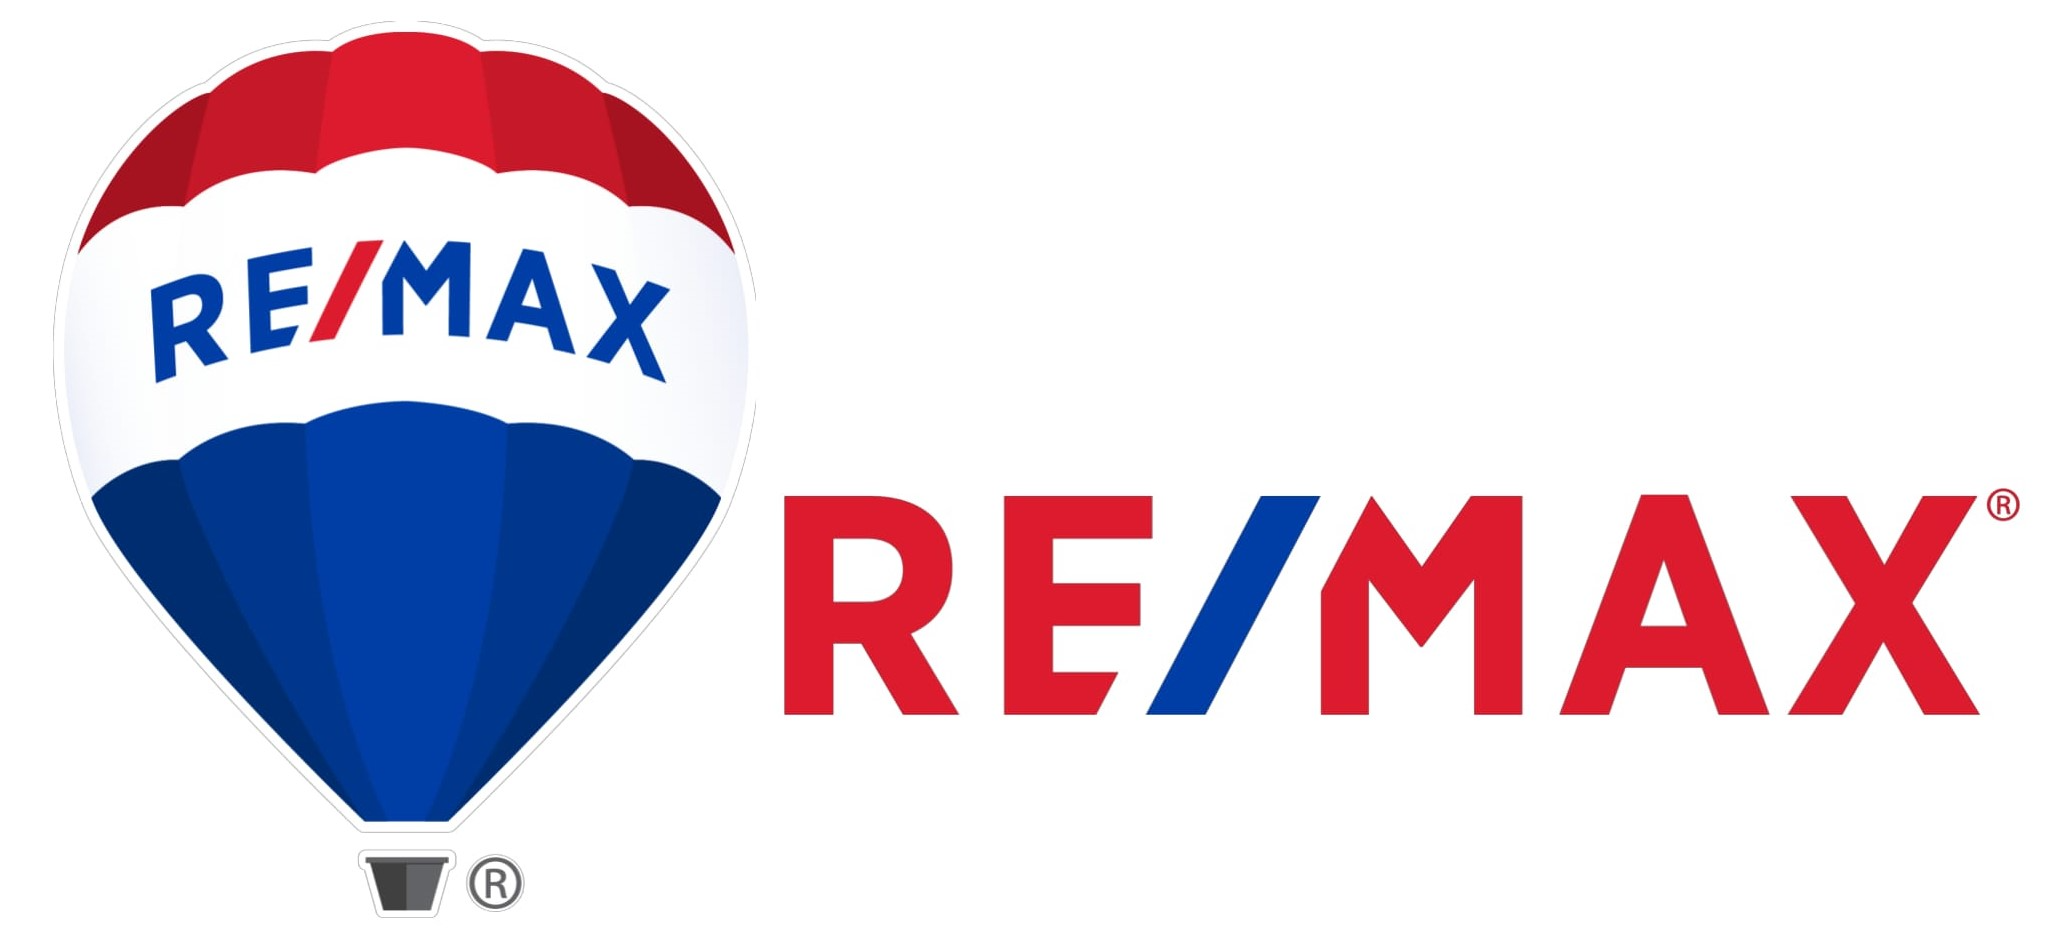 VIP] REMAX Q1,2019 Earnings: Refusing Greatness.